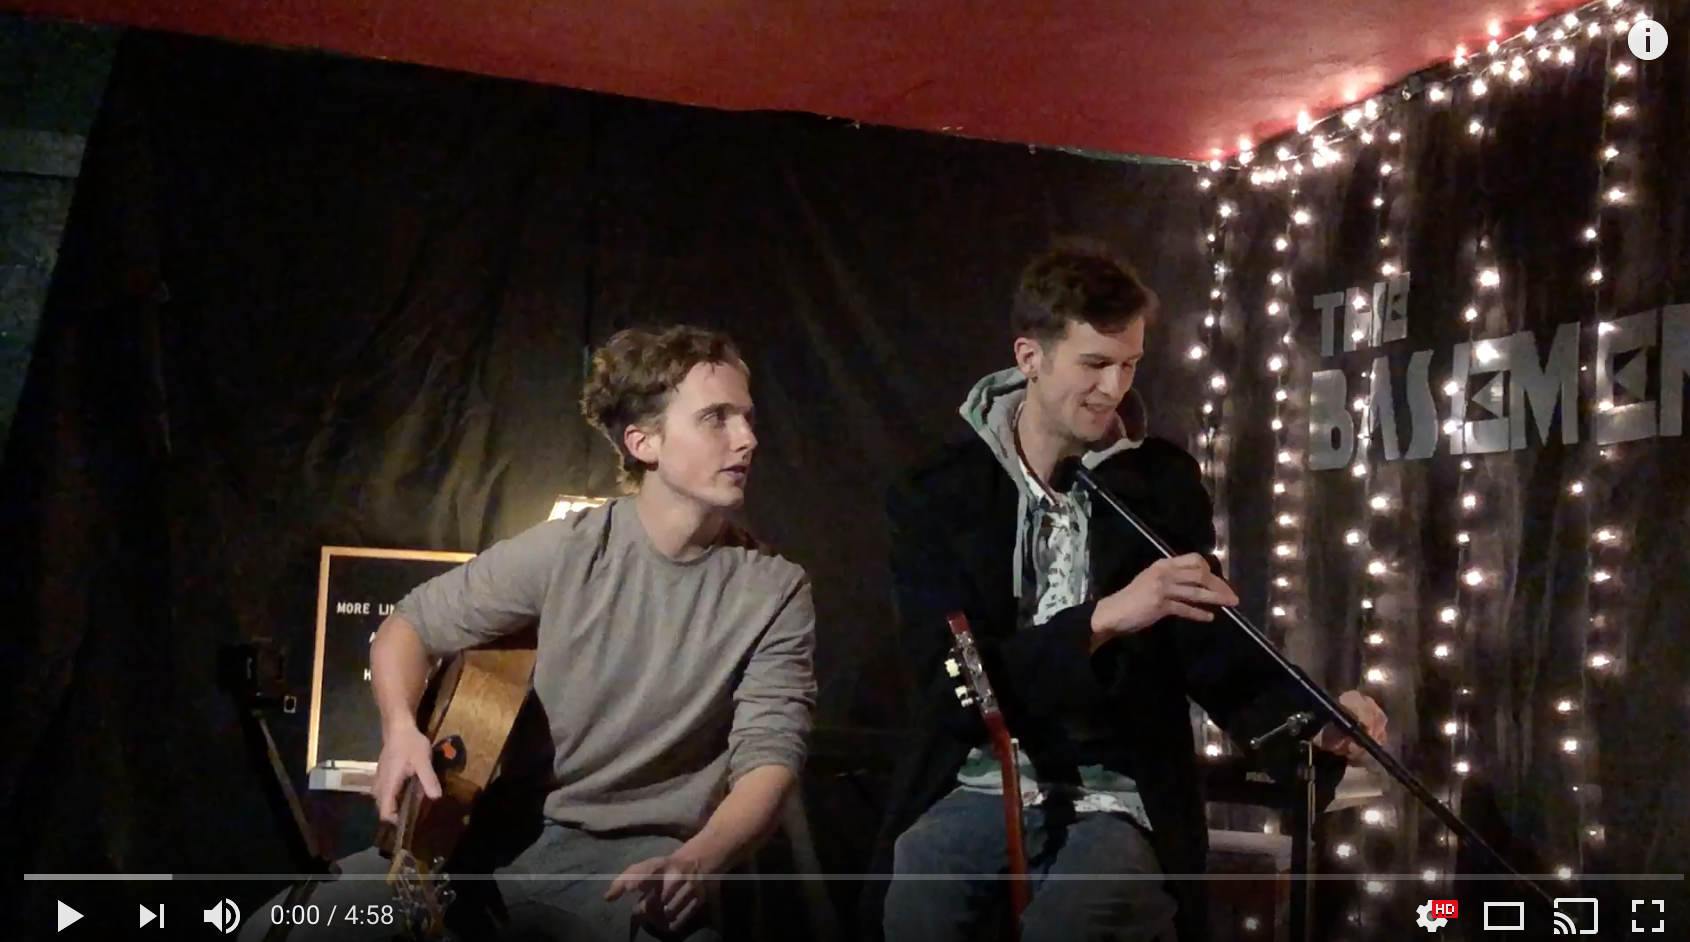 Two Toms, No Mic - Tom and Tom continue their shtick at No Mic Open Mic of making everyone else sound more talented and prepared. You're welcome, and just wait. One of these times we will remember most of the words.